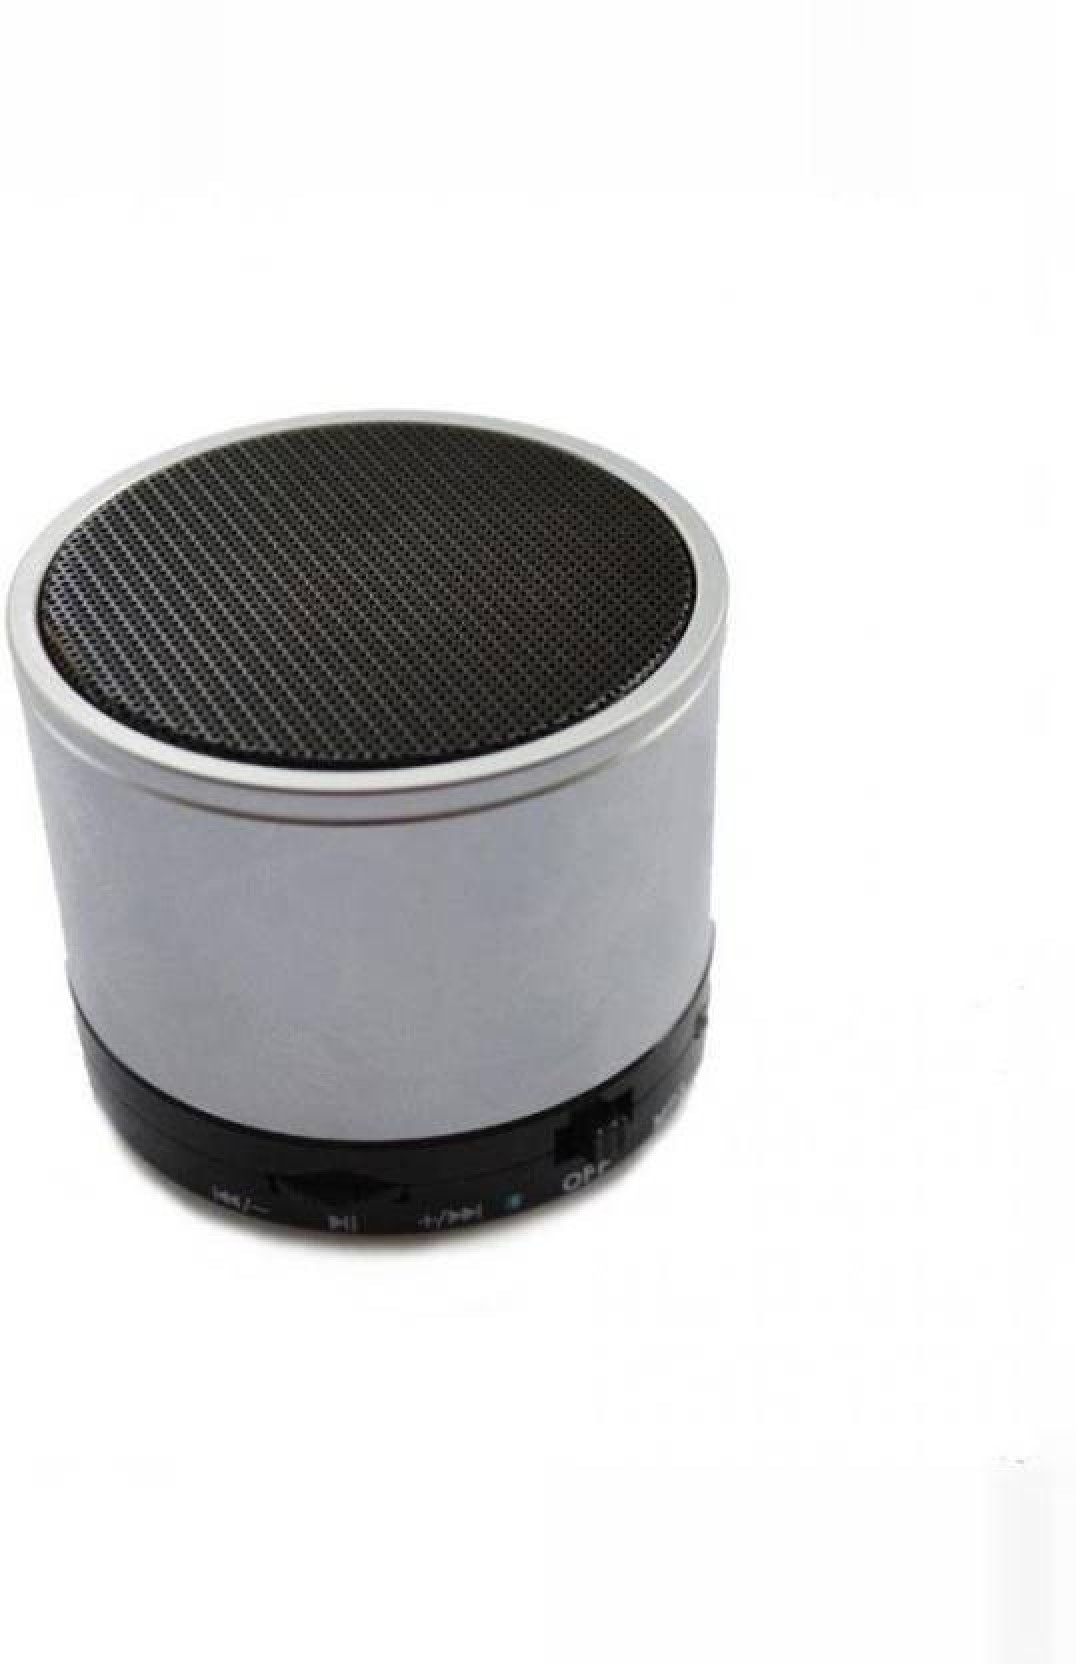 Buy Hoatzin Mini S10 Wireless Bluetooth With High Quality Sound Speaker Add To Cart